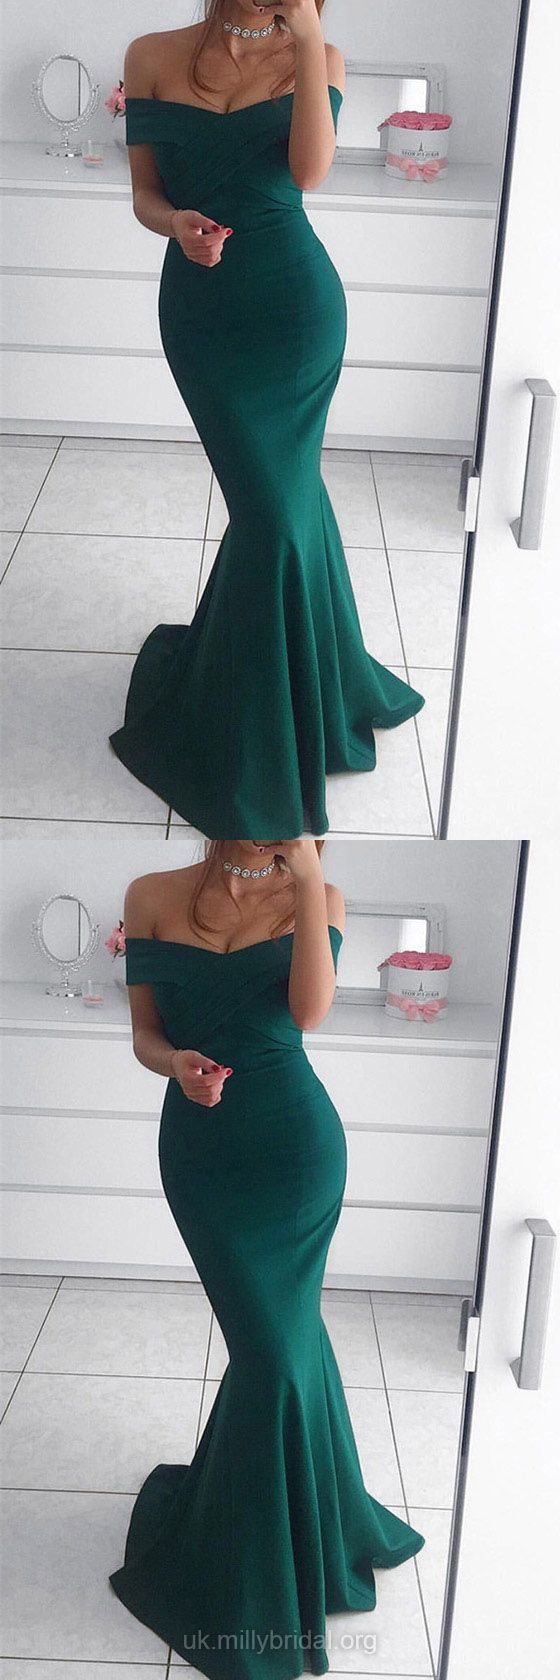 Green Prom Dresses, Long Prom Dresses, Sexy Prom Dresses Silk-like Satin, Off-the-shoulder Prom Dresses Trumpet/Mermaid, Ruffles Prom Dresses For Teens #greendresses